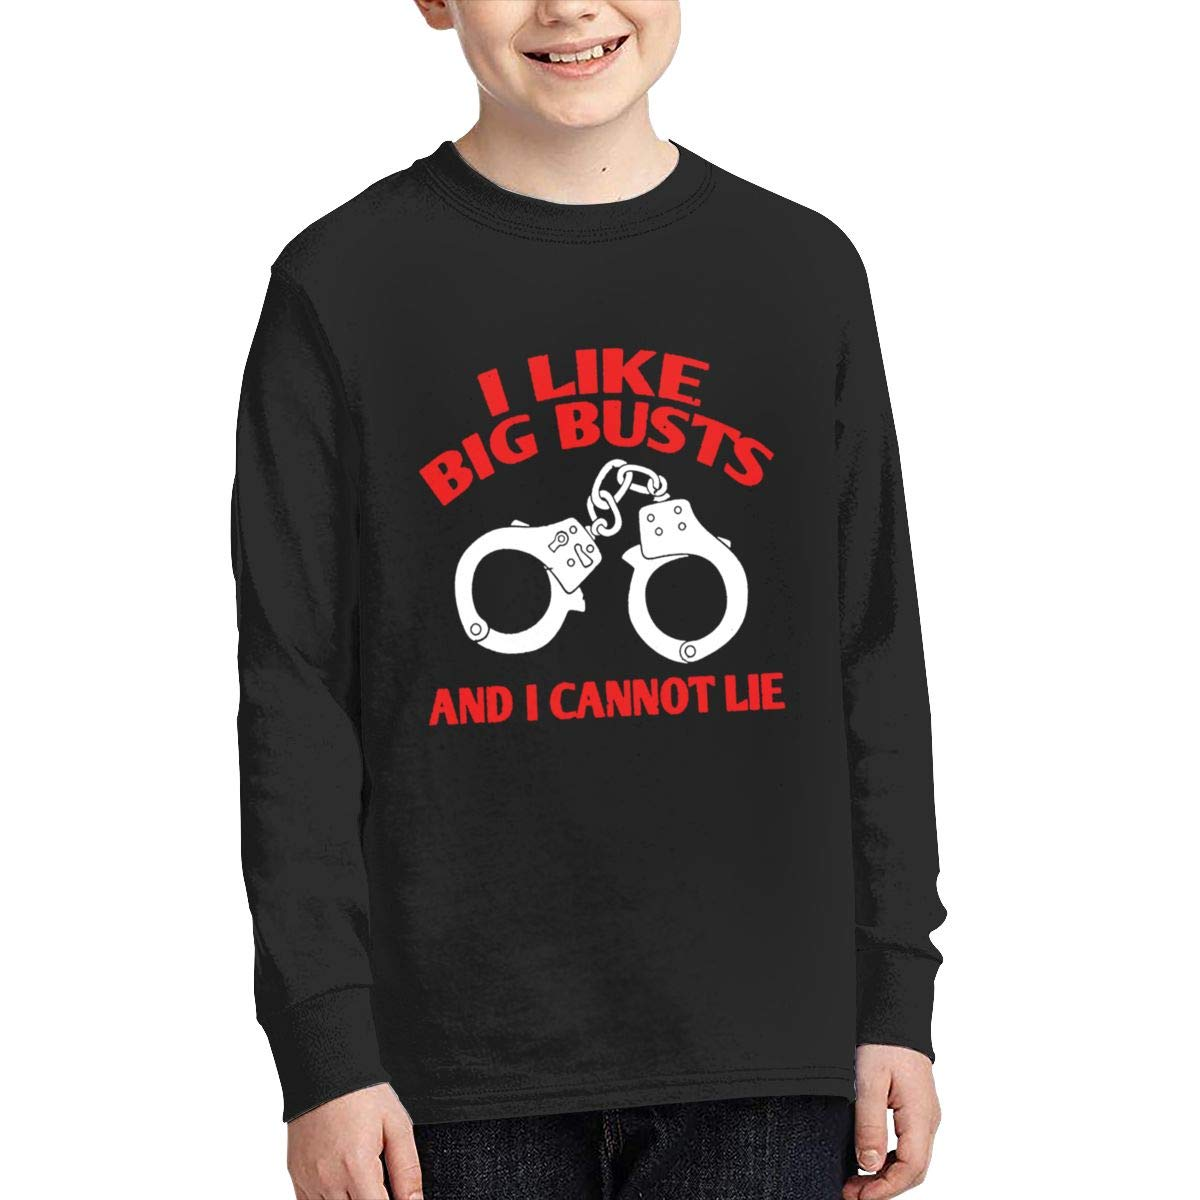 Qiop Nee I Like Big Busts and I Cannot Lie Long Sleeves Shirt for Girls